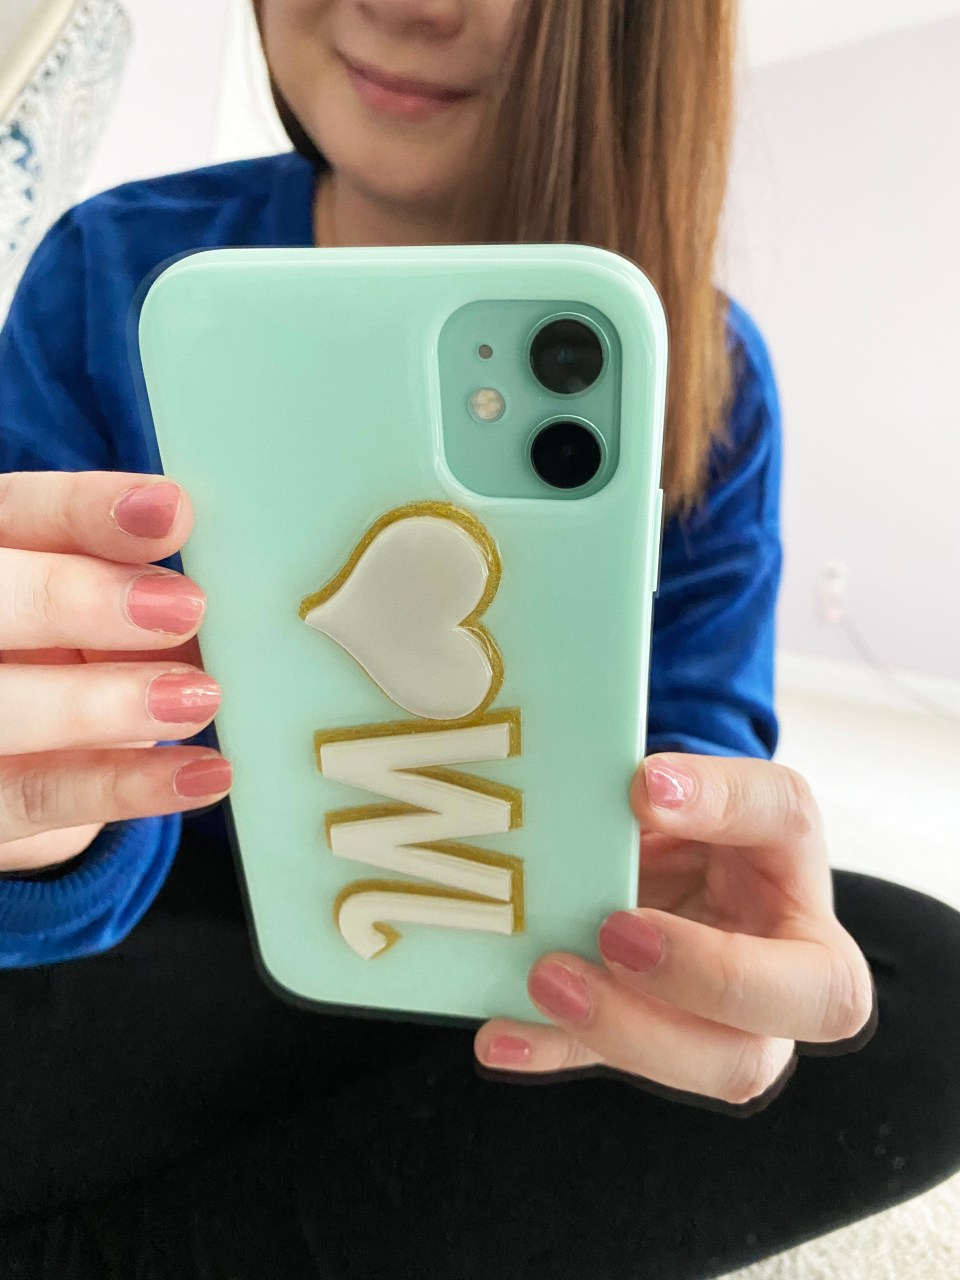 Baublebar x OMC Personalized Phone Case 5